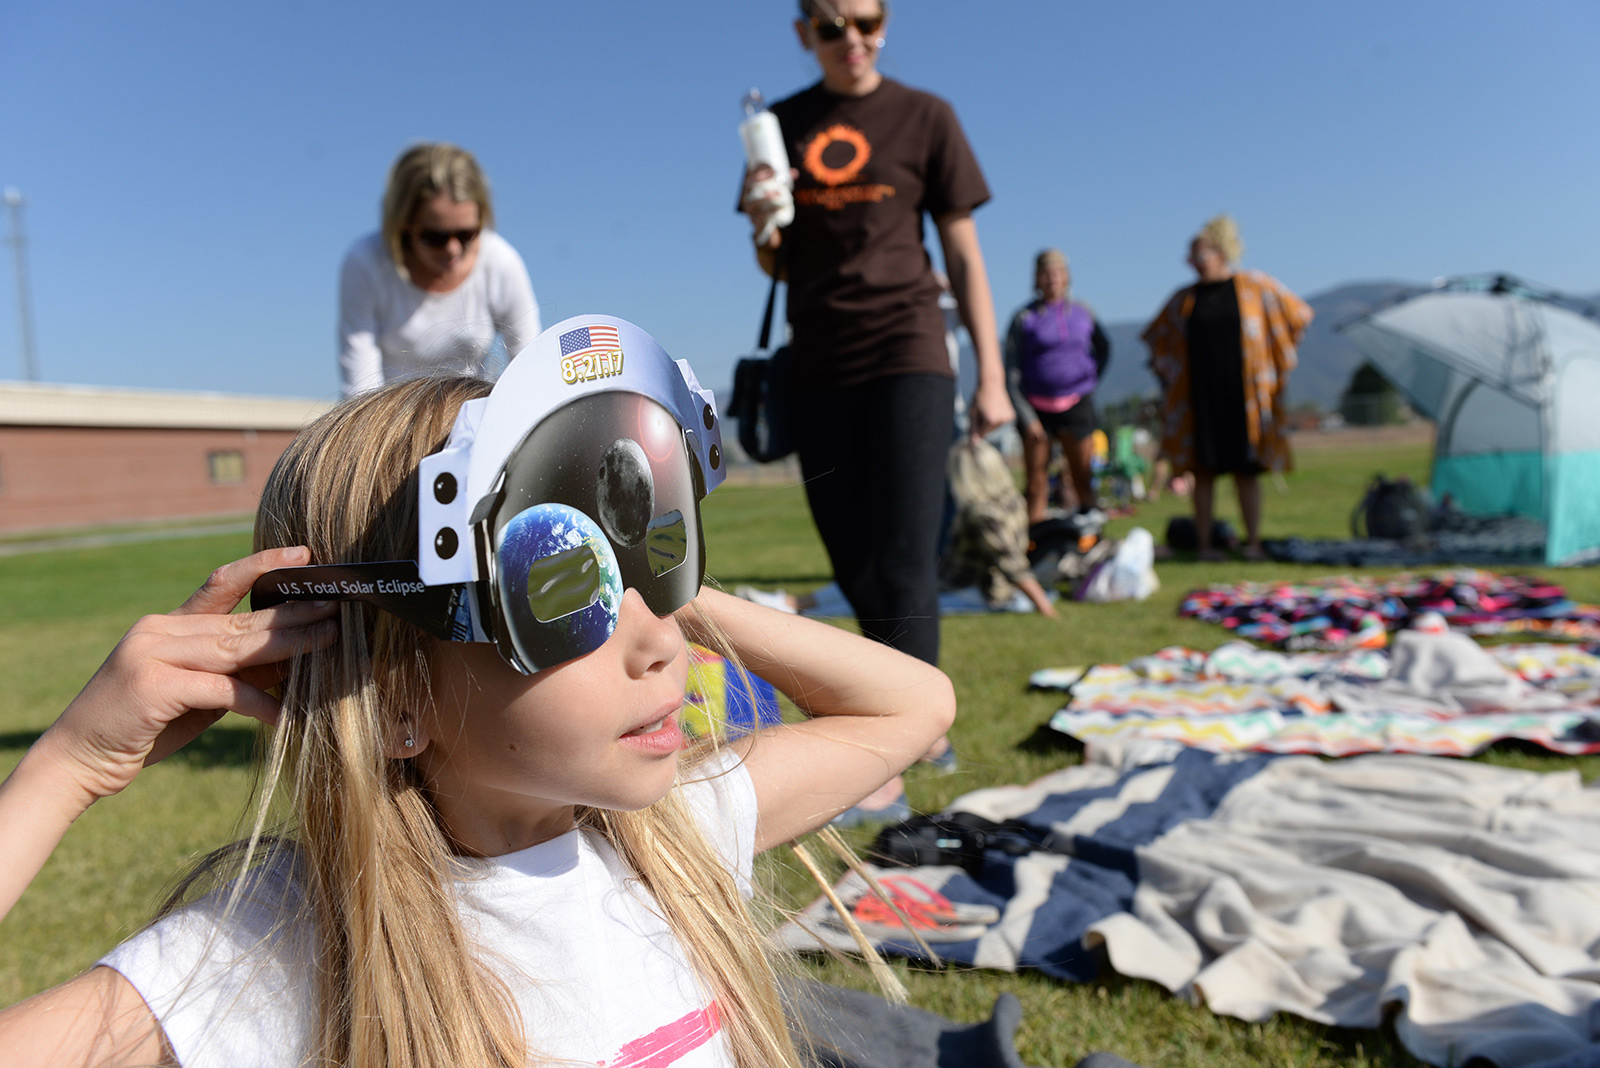 Olivia loved watching the solar eclipse, and the cool eclipse glasses didn't hurt either.